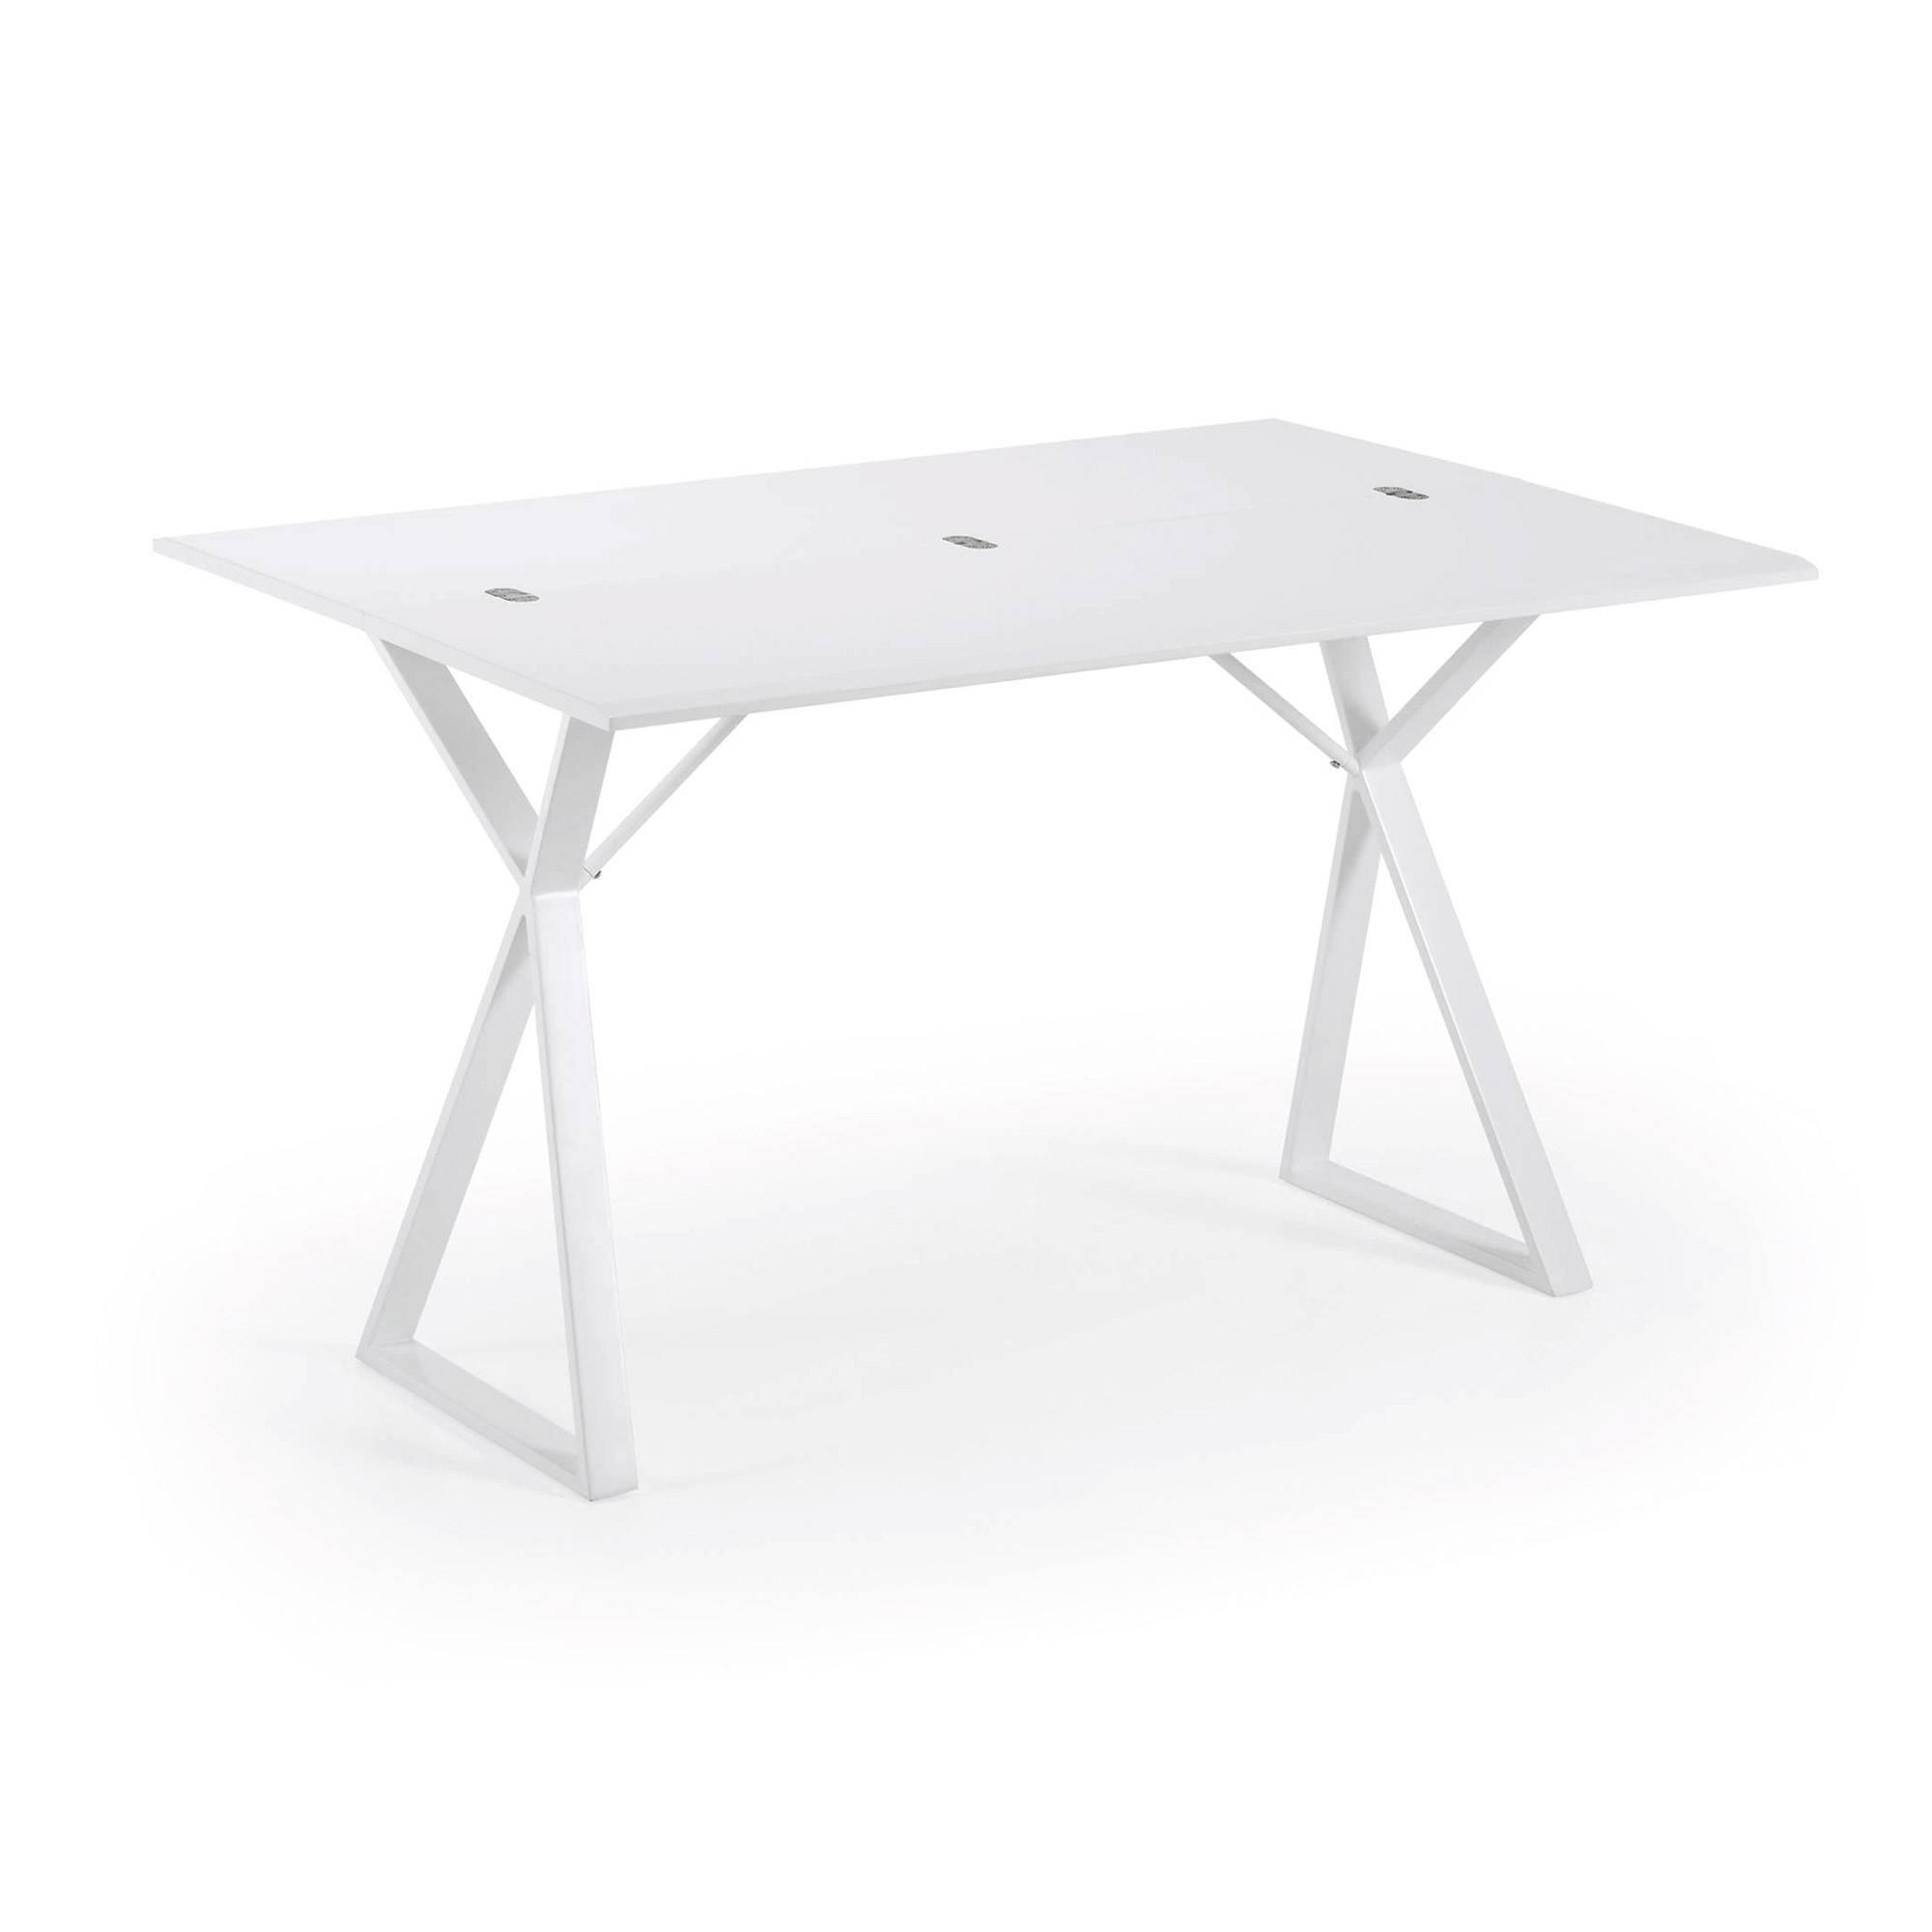 Kave Home Consolle Table Kita 130 x 45 (90) cm